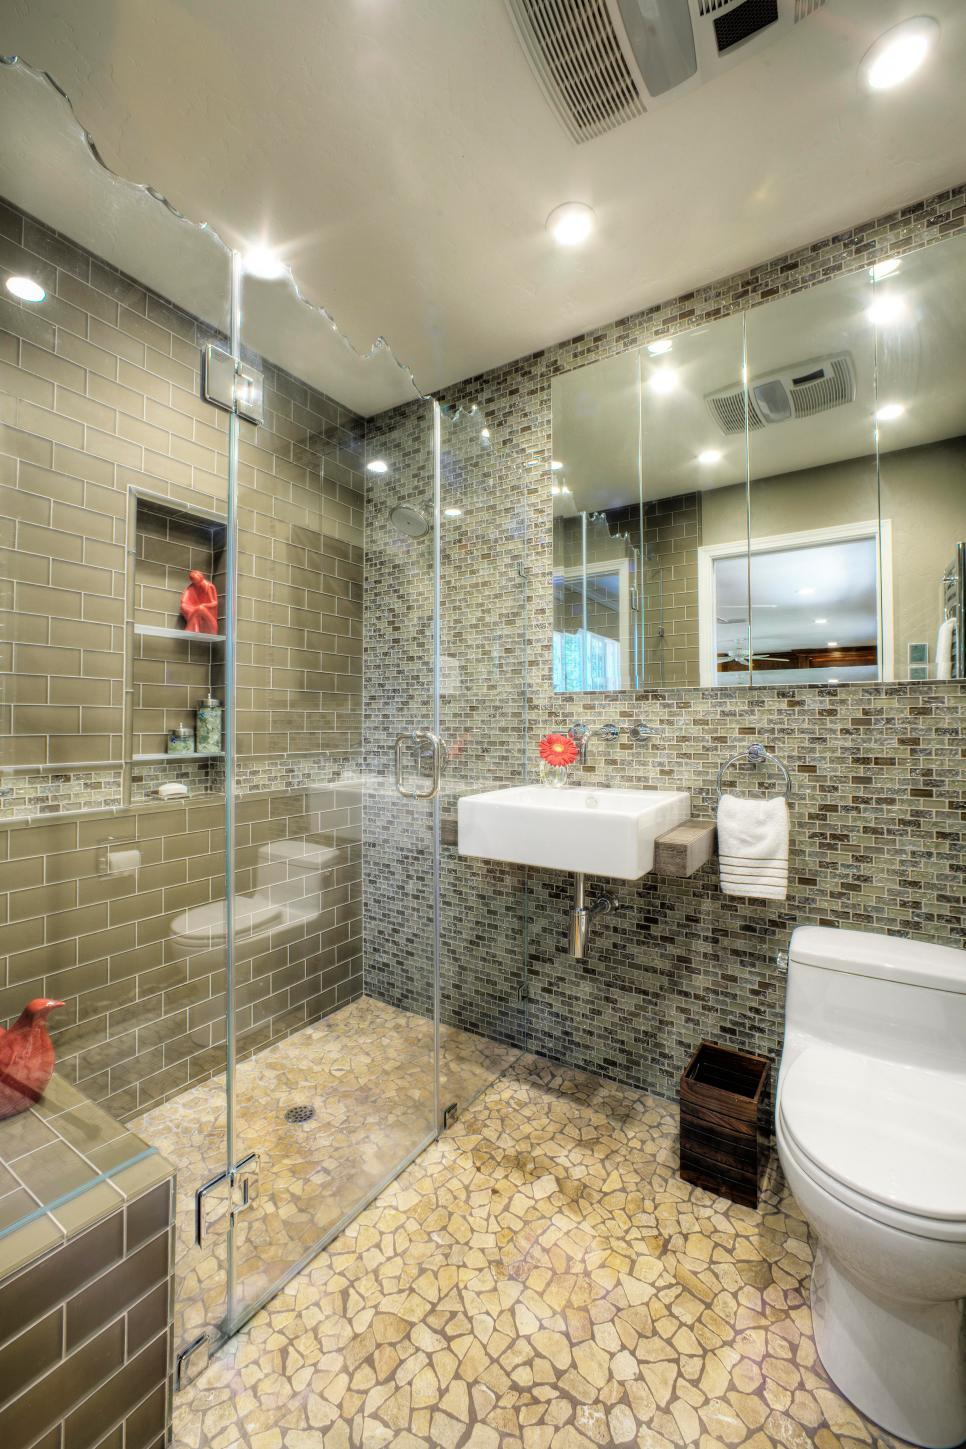 nkba bath trend no threshold showers 5 photos - Shower Design Ideas